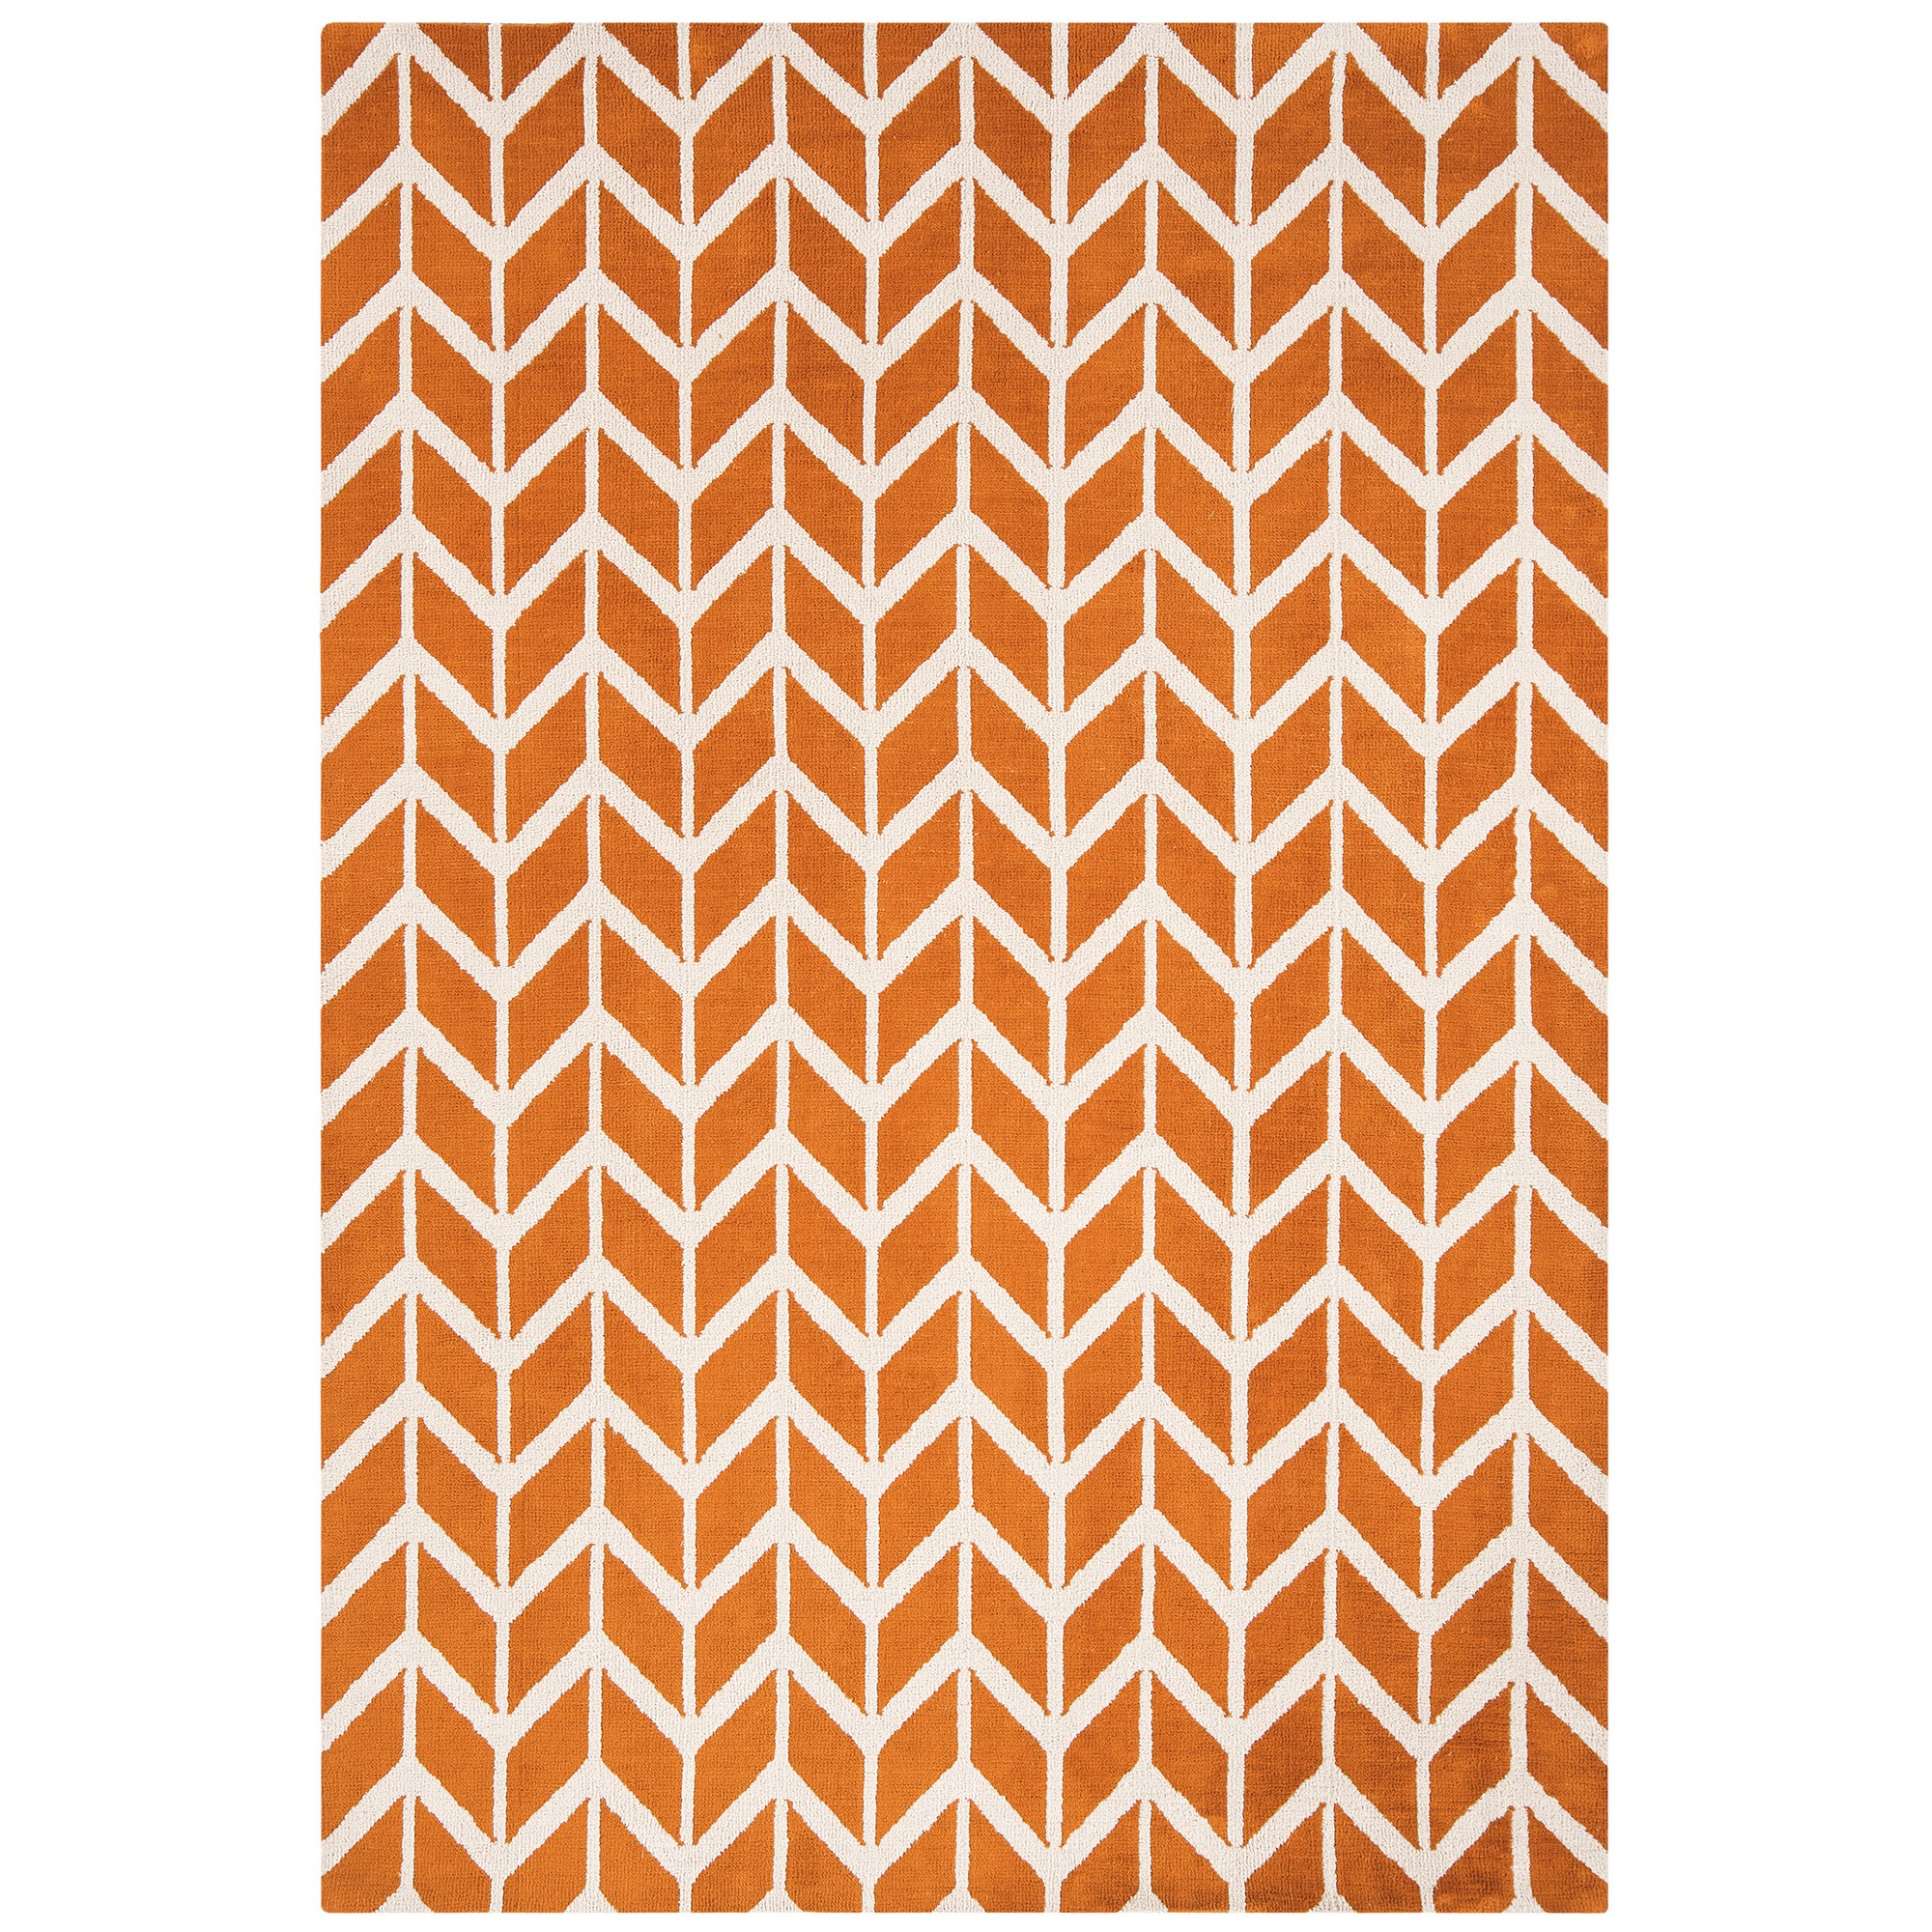 Arlo Chevron Rugs AR07 in Orange